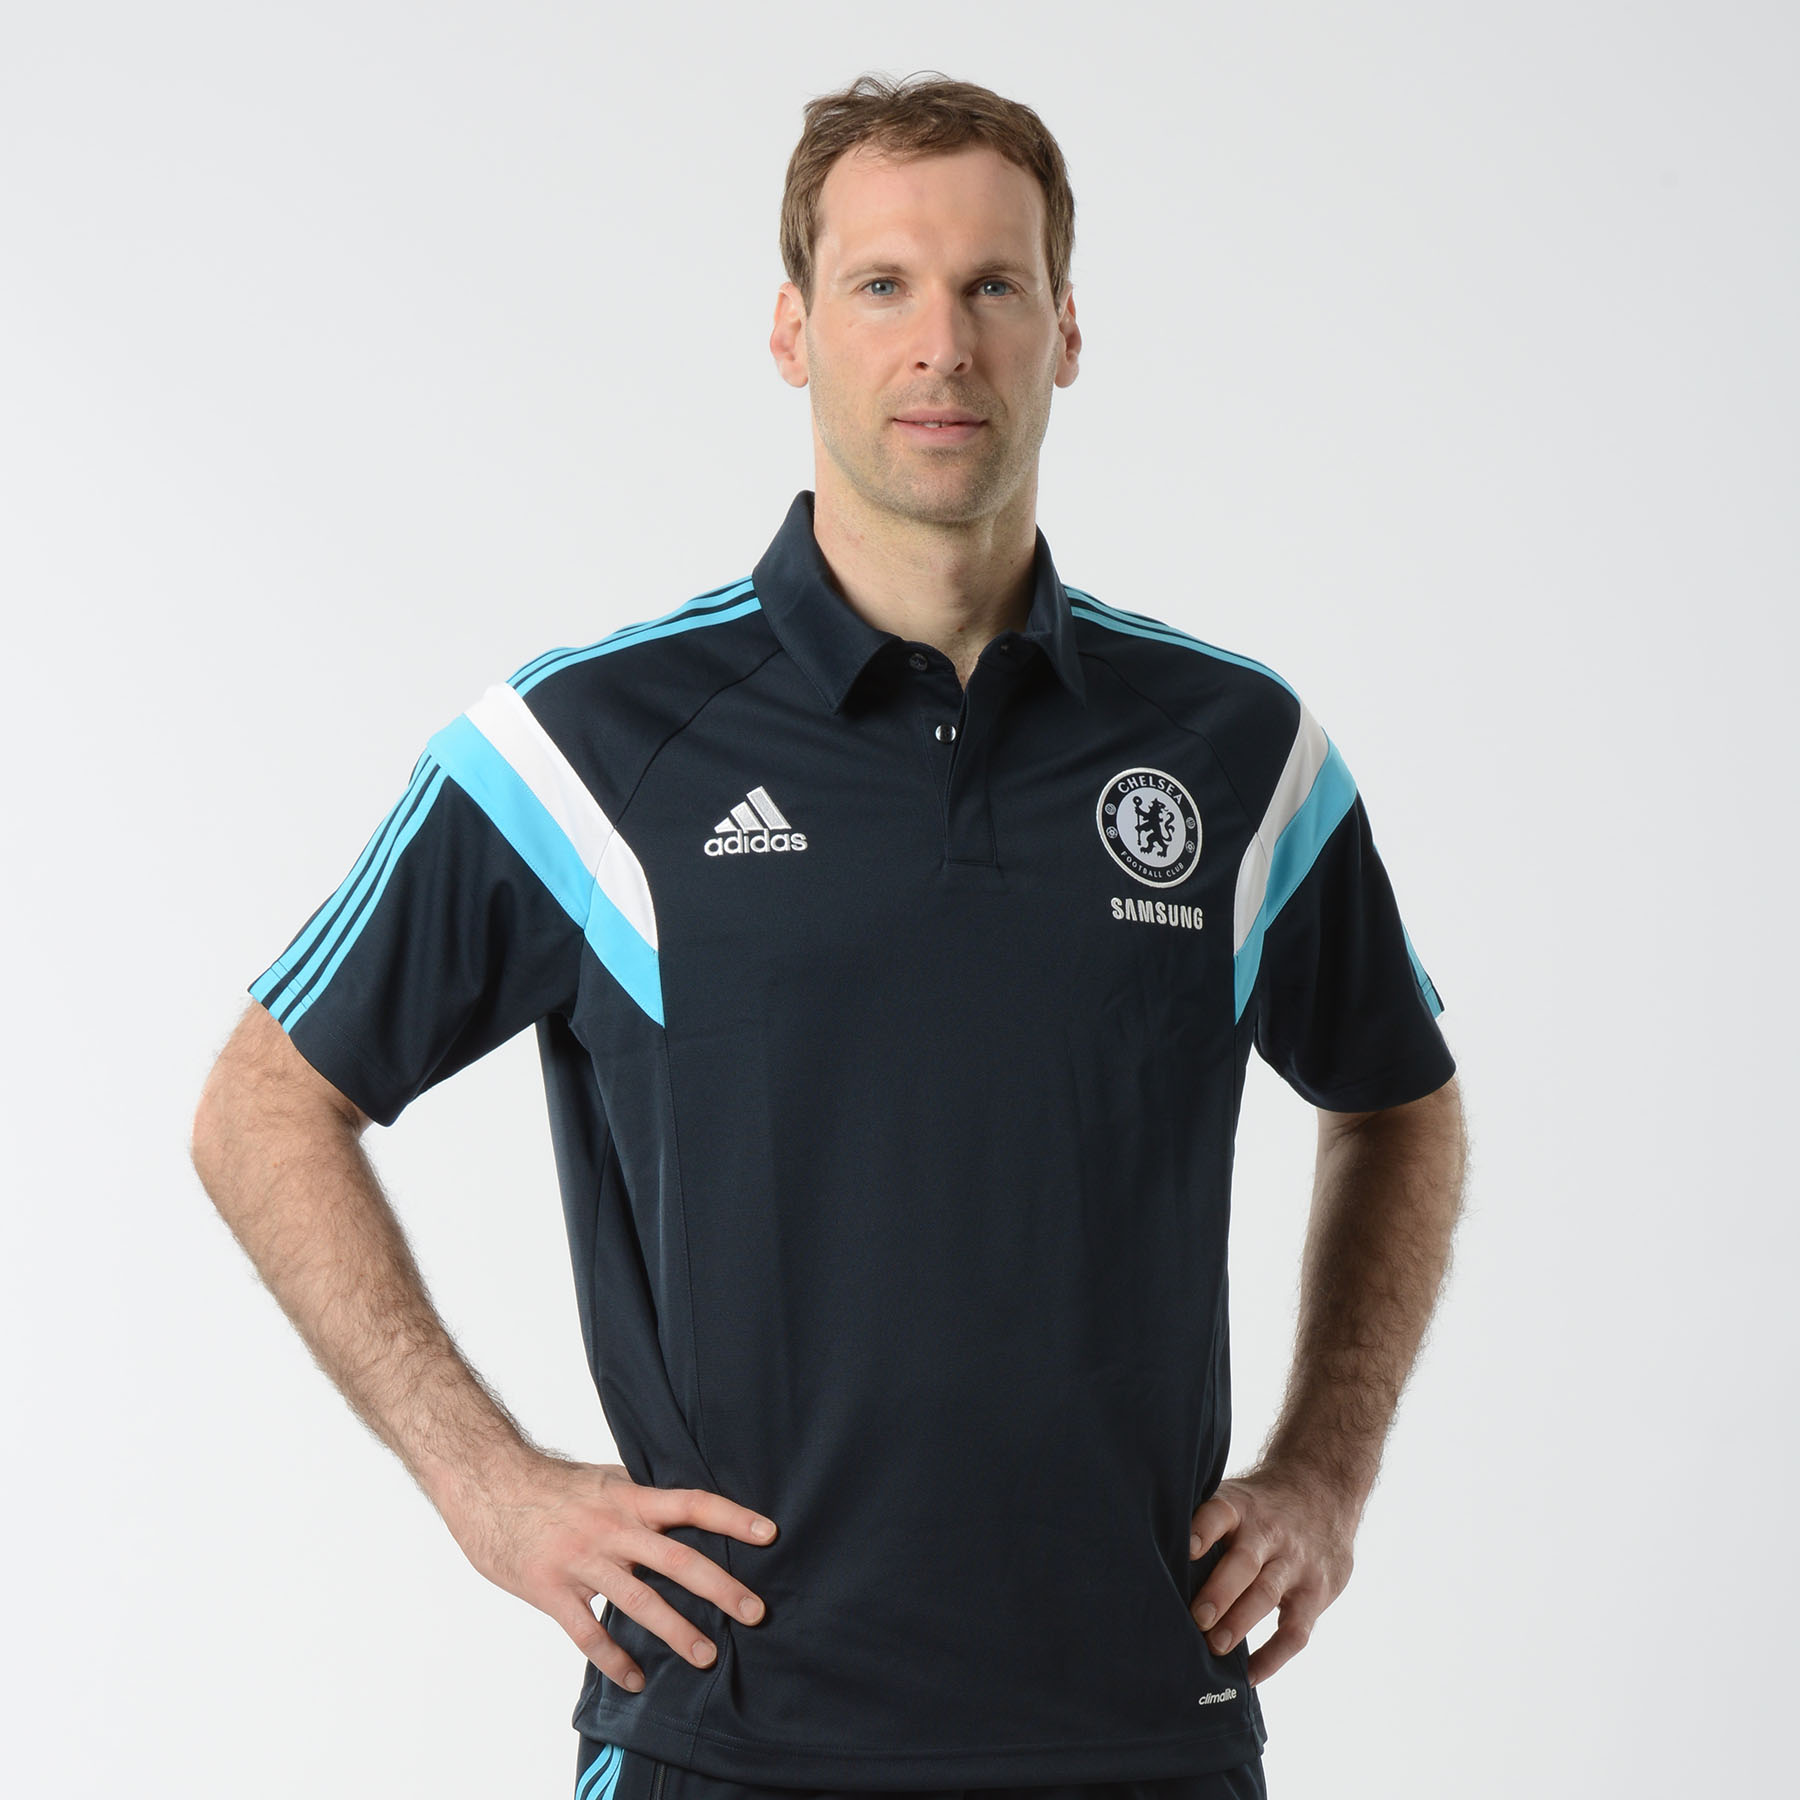 Chelsea Training Polo Dark Blue Enjoy a casual look casual with this dark blue Chelsea Training Polo. Made from soft, lightweight fabric, you can enjoy superior moisture management when you're out training in this adidas top.   Styled with a Chelsea club crest lion badge, adidas performance logo and stripes and a stylish buttoned collar, you can wear this Chelsea training top for club pride, comfort and style.   Benefits of this Chelsea Training Polo •Superior moisture management so you can stay cool and dry when the game heats up •Chelsea club crest on the chest •adidas three stripe logo